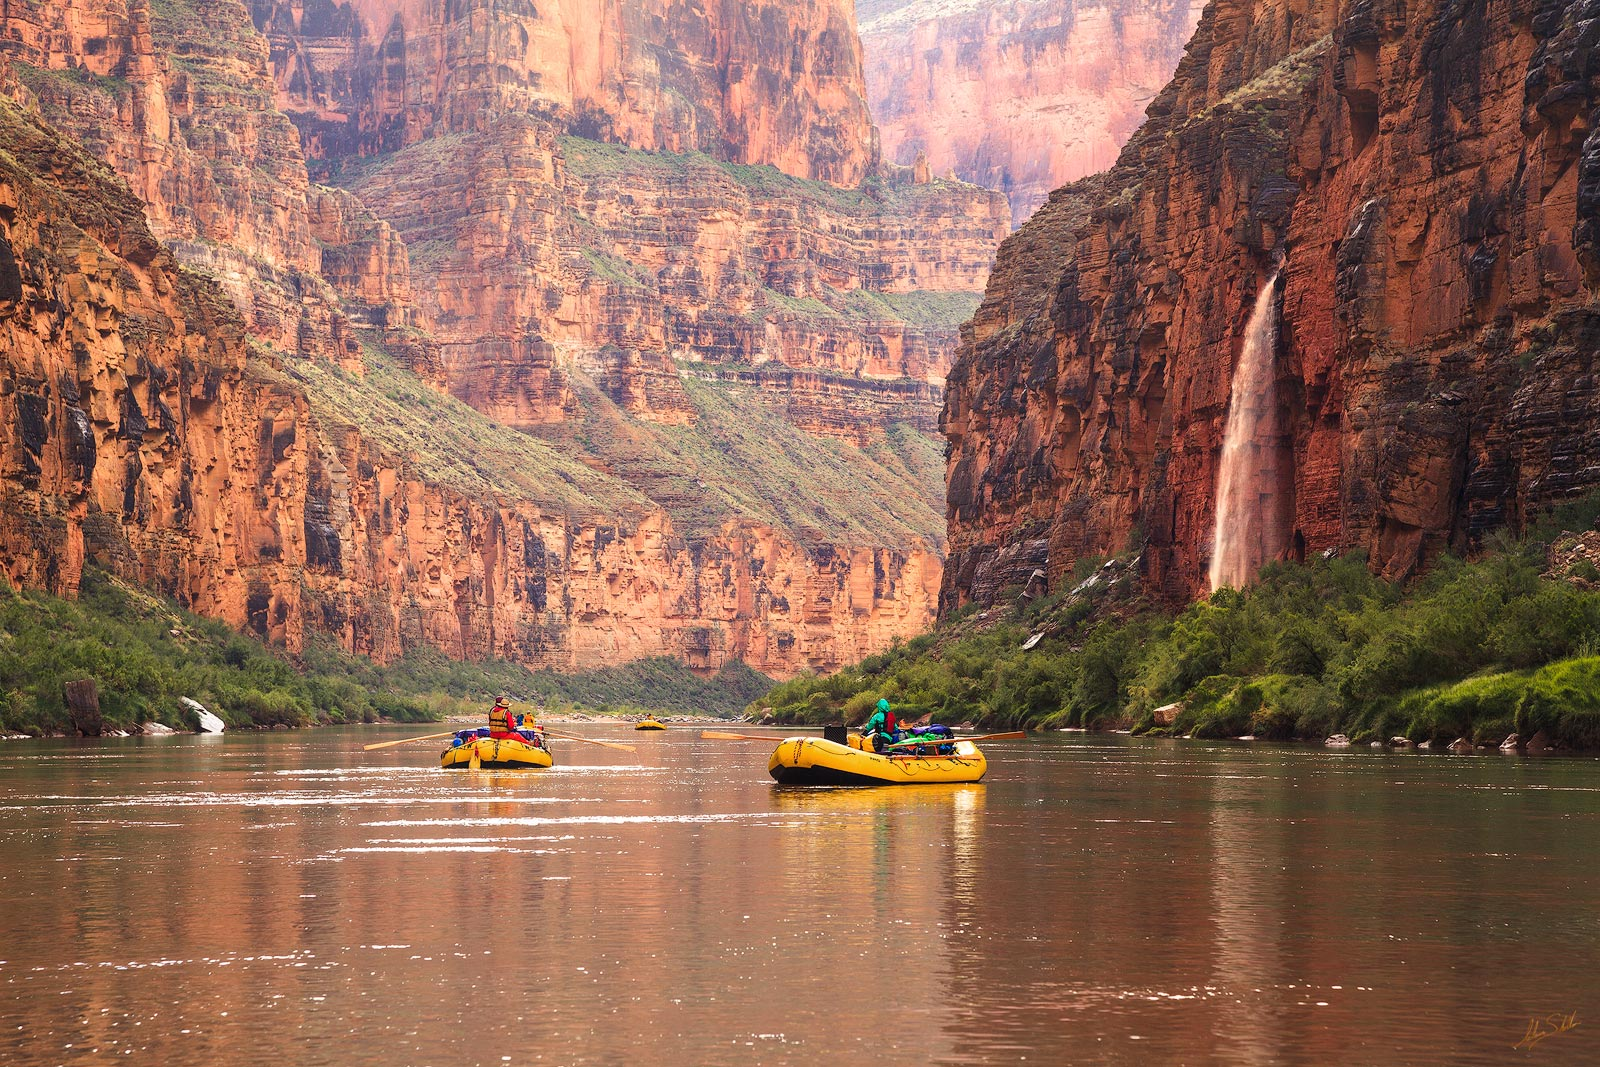 Grand Canyon, Raft, Rafting, Colorado River, Waterfall, Photography, Workshop, Expedition, photo